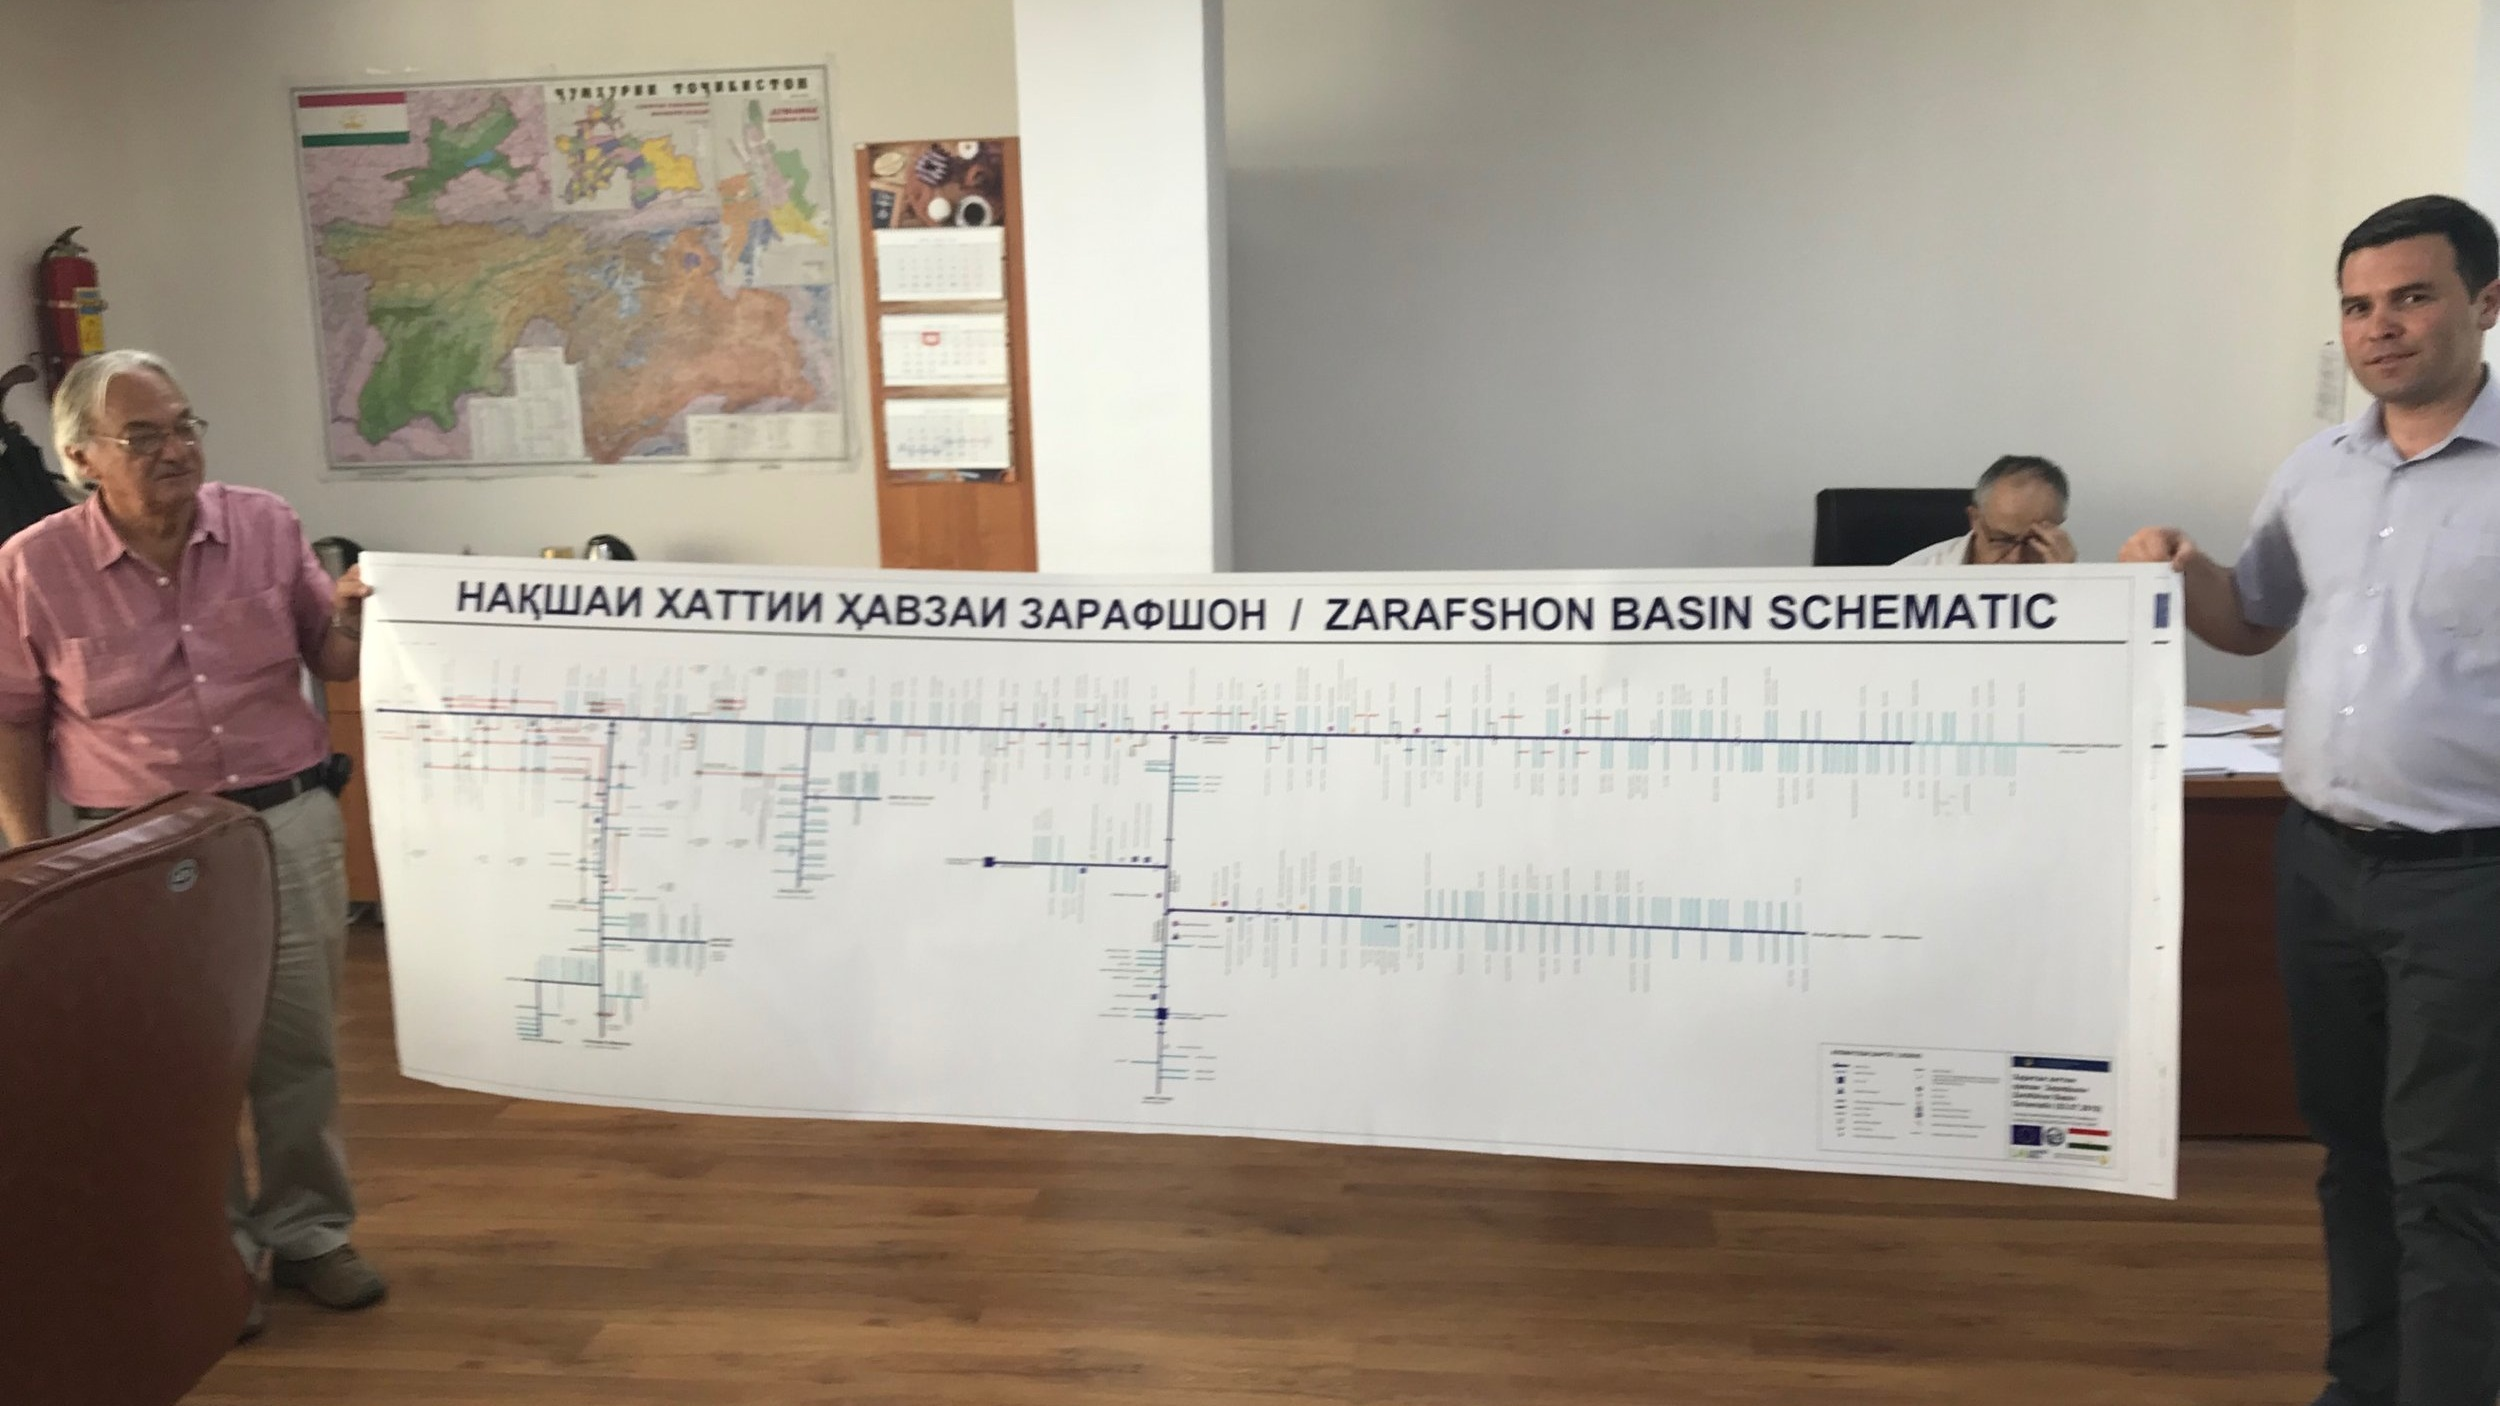 2019 version of the Zarafshon Basin Schematic (photos by Andreas de Jong)